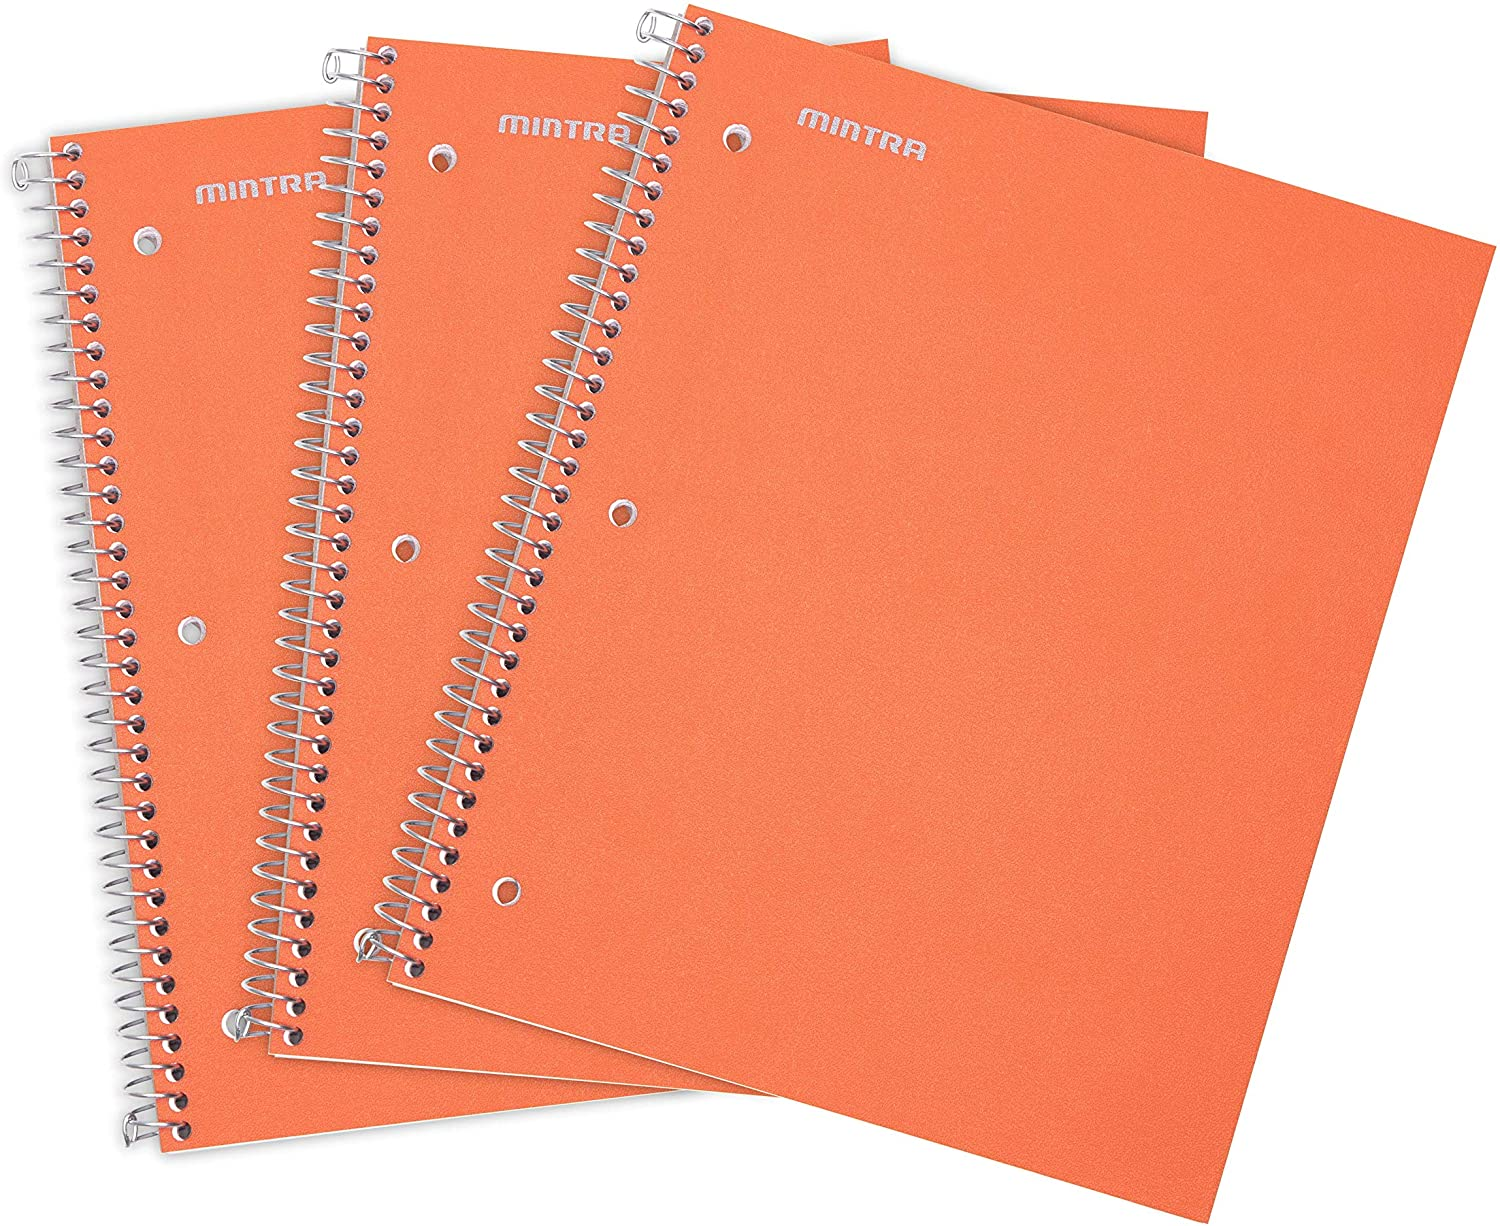 Mintra Office Durable Spiral Notebooks -1 Subject, 100 Sheets, Poly Pocket, Moisture Resistant Cover, Strong Chipboard back, For School, Office, Business, (Orange, Wide Ruled 3 Pack)